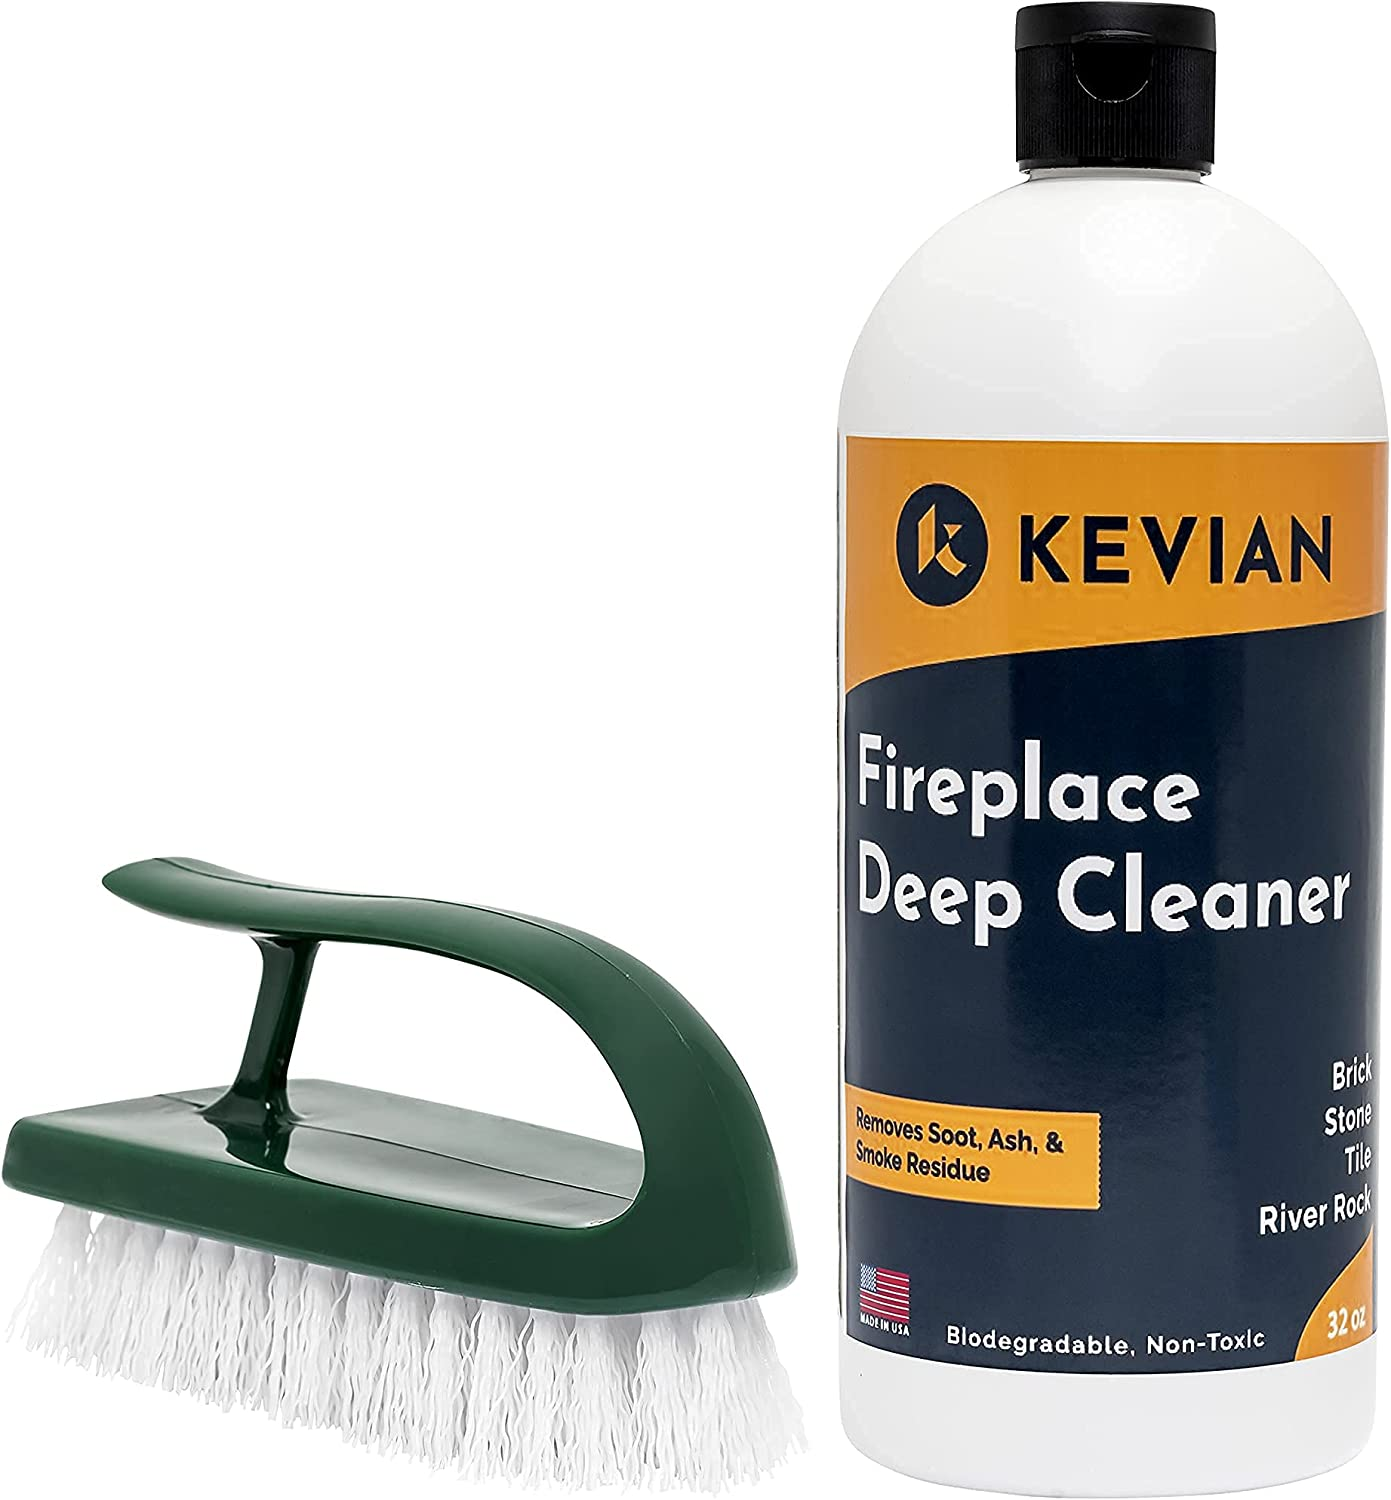 Kevian Fireplace Deep Cleaner - Heavy Duty Cleaner/Remover for Brick, Stone, Tile, and Rock Fireplaces - Removes Soot, Creosote, Smoke, and More - Brush Included, 32oz Kit